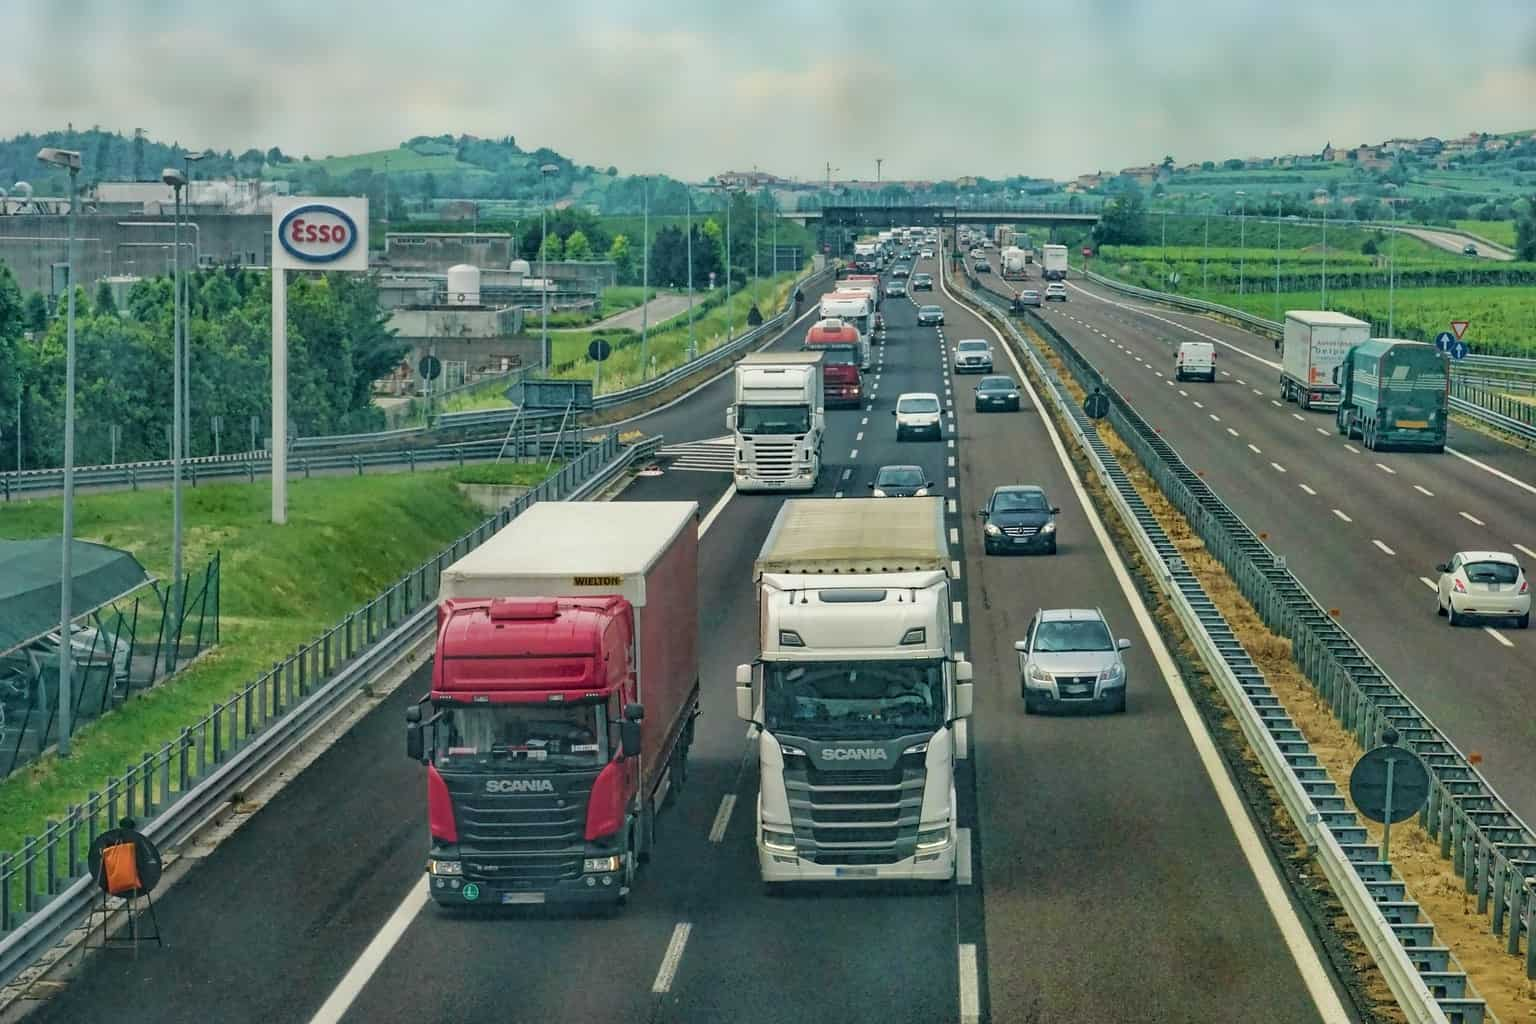 Two trucks on a motorway with cars and other trucks behind